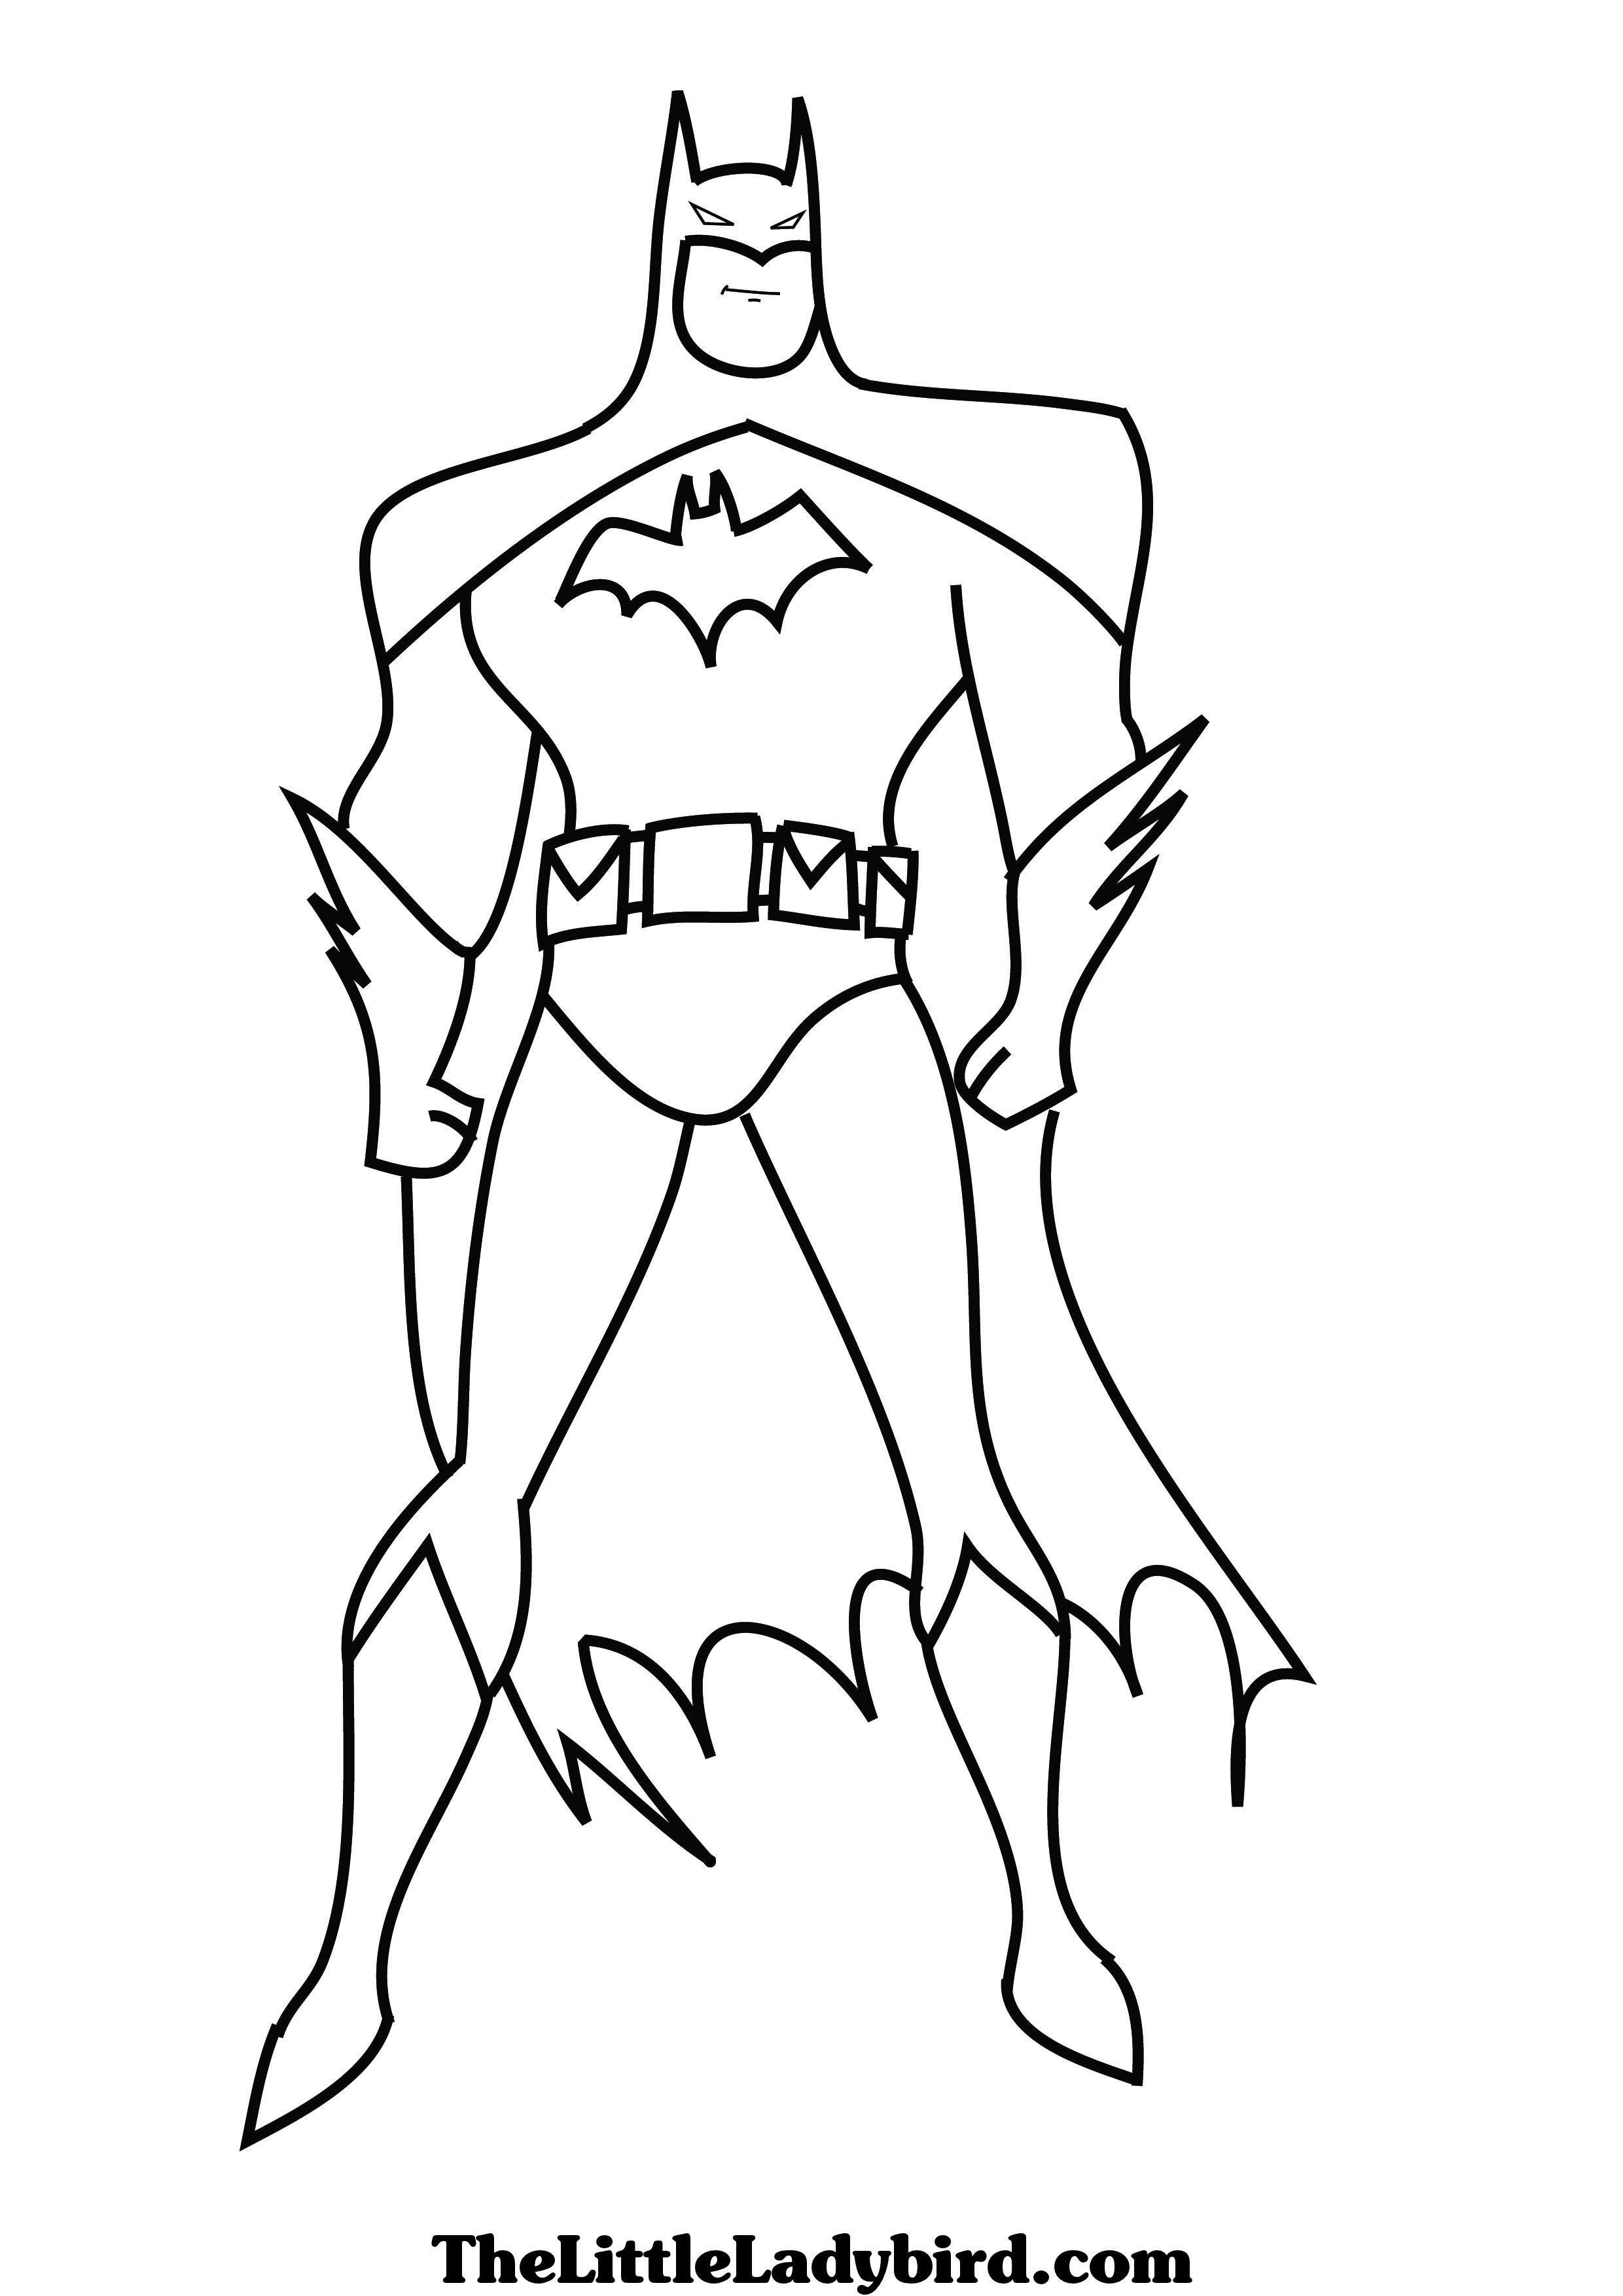 Justice League Coloring Pages Luxury Coloring Pages Batman Colouring Sheet 71 Printable Ent Superhero Coloring Pages Superhero Coloring Superman Coloring Pages